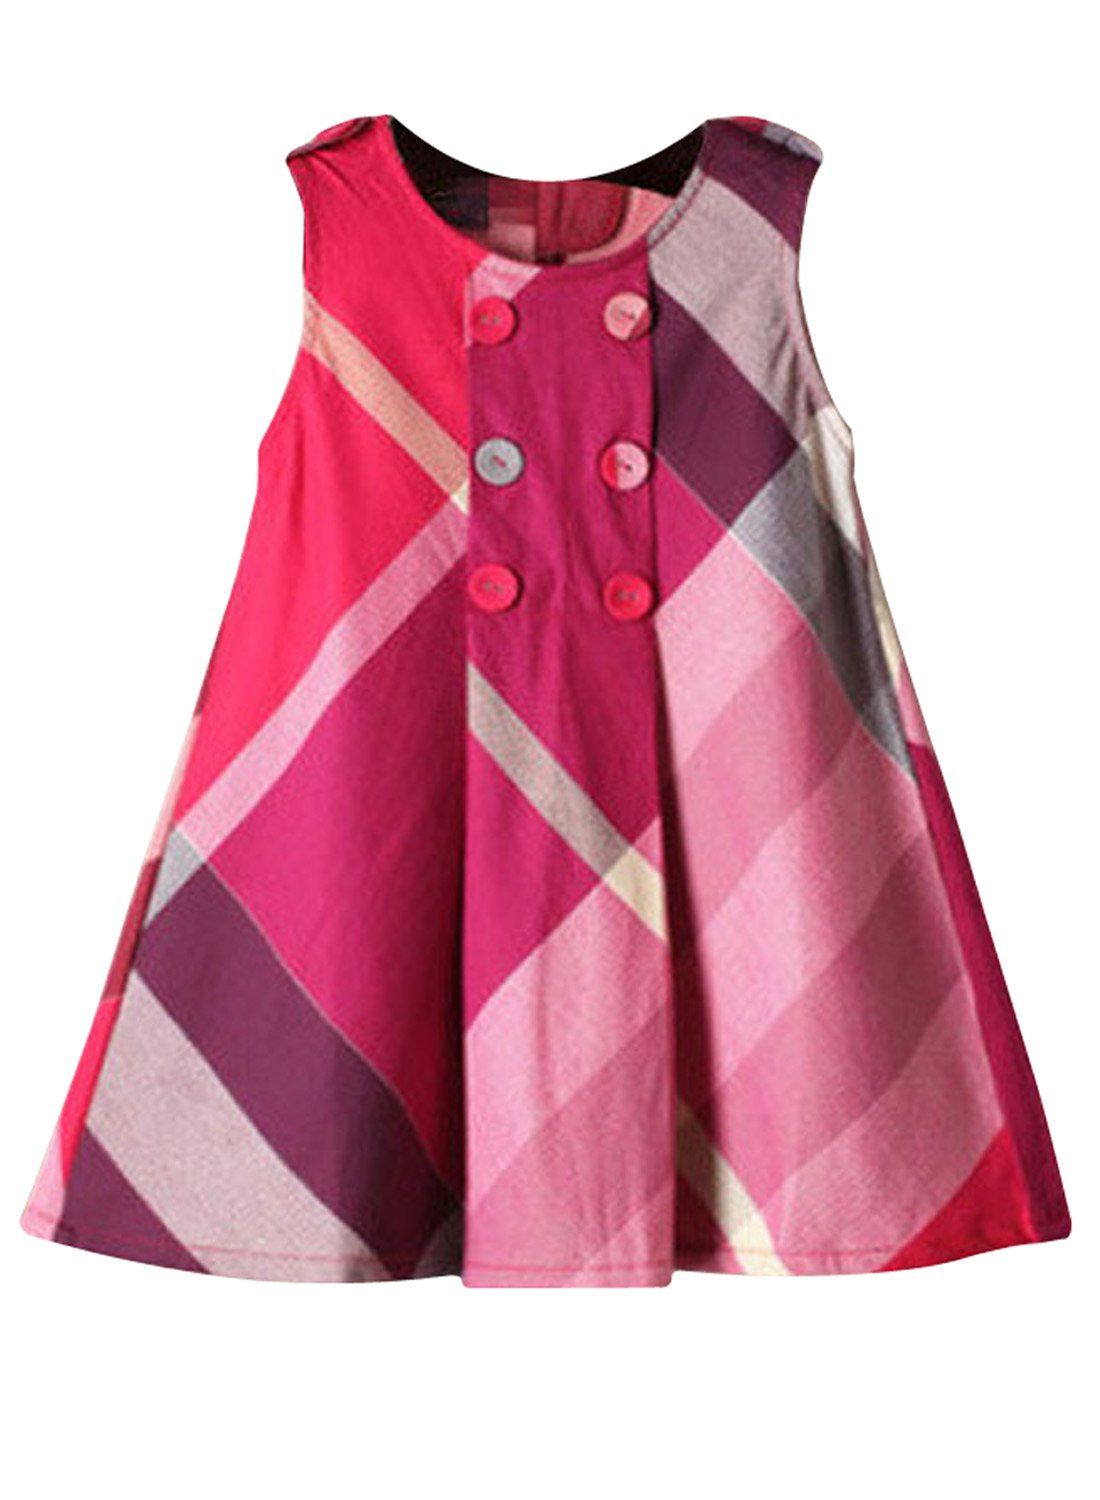 Yinggeli Little Baby Girls Long Sleeve Plaid Checked Princess Dress (2-3 Years, A-Rose Red)